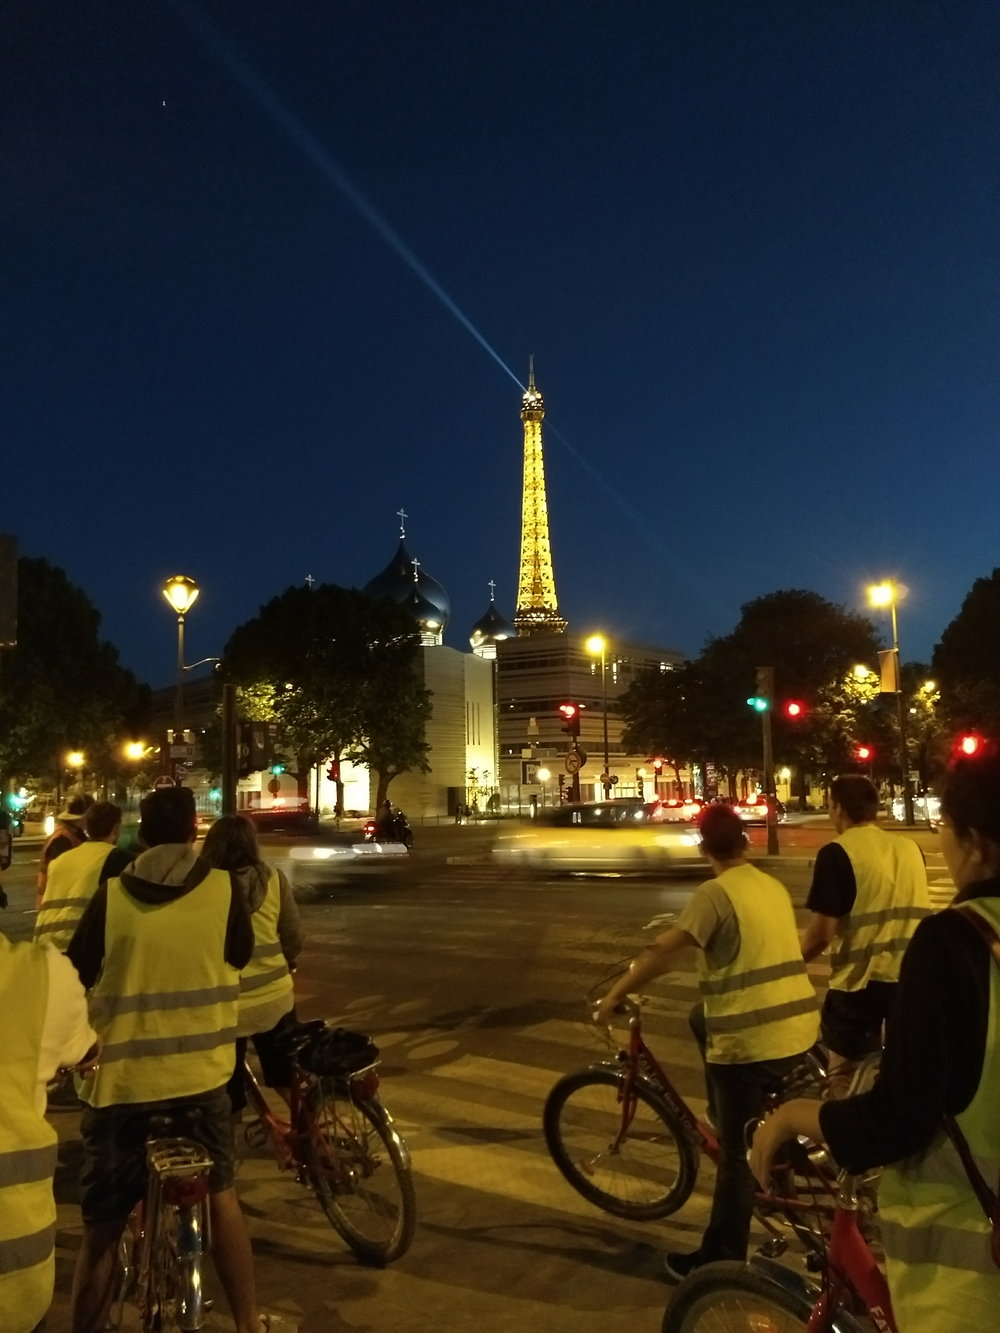 Enjoying the twinkly lights on the Eiffel Tower at the end of the bike tour.